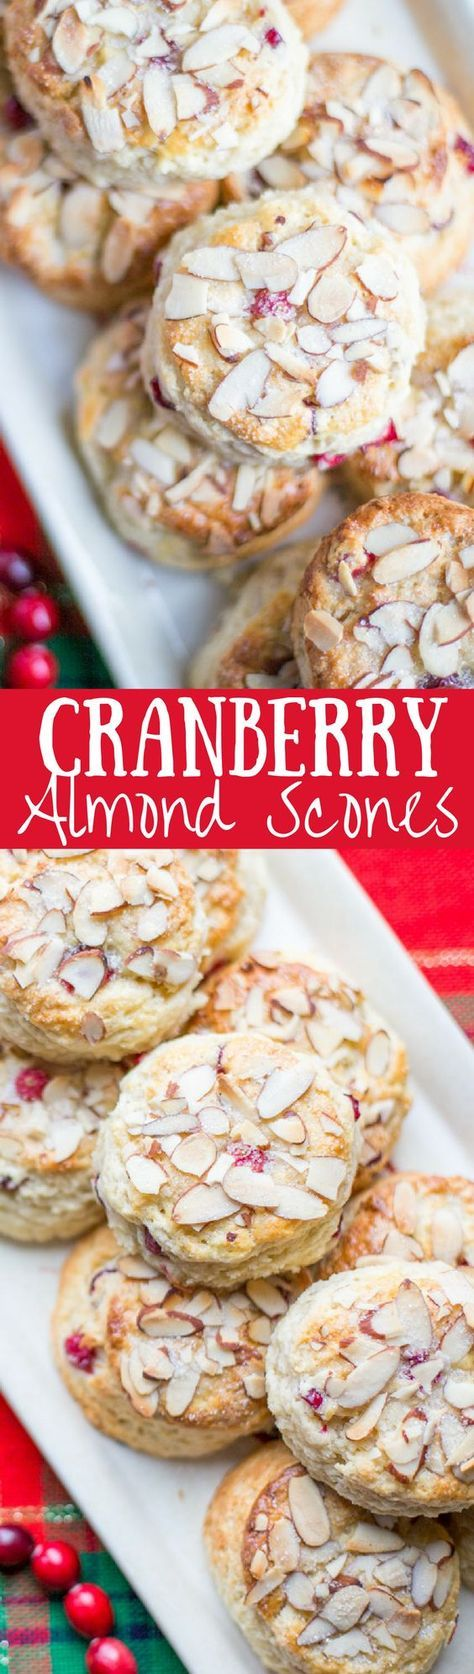 Cranberry Almond Scones - lightly sweet with a big almond flavor | www.savingdessert...